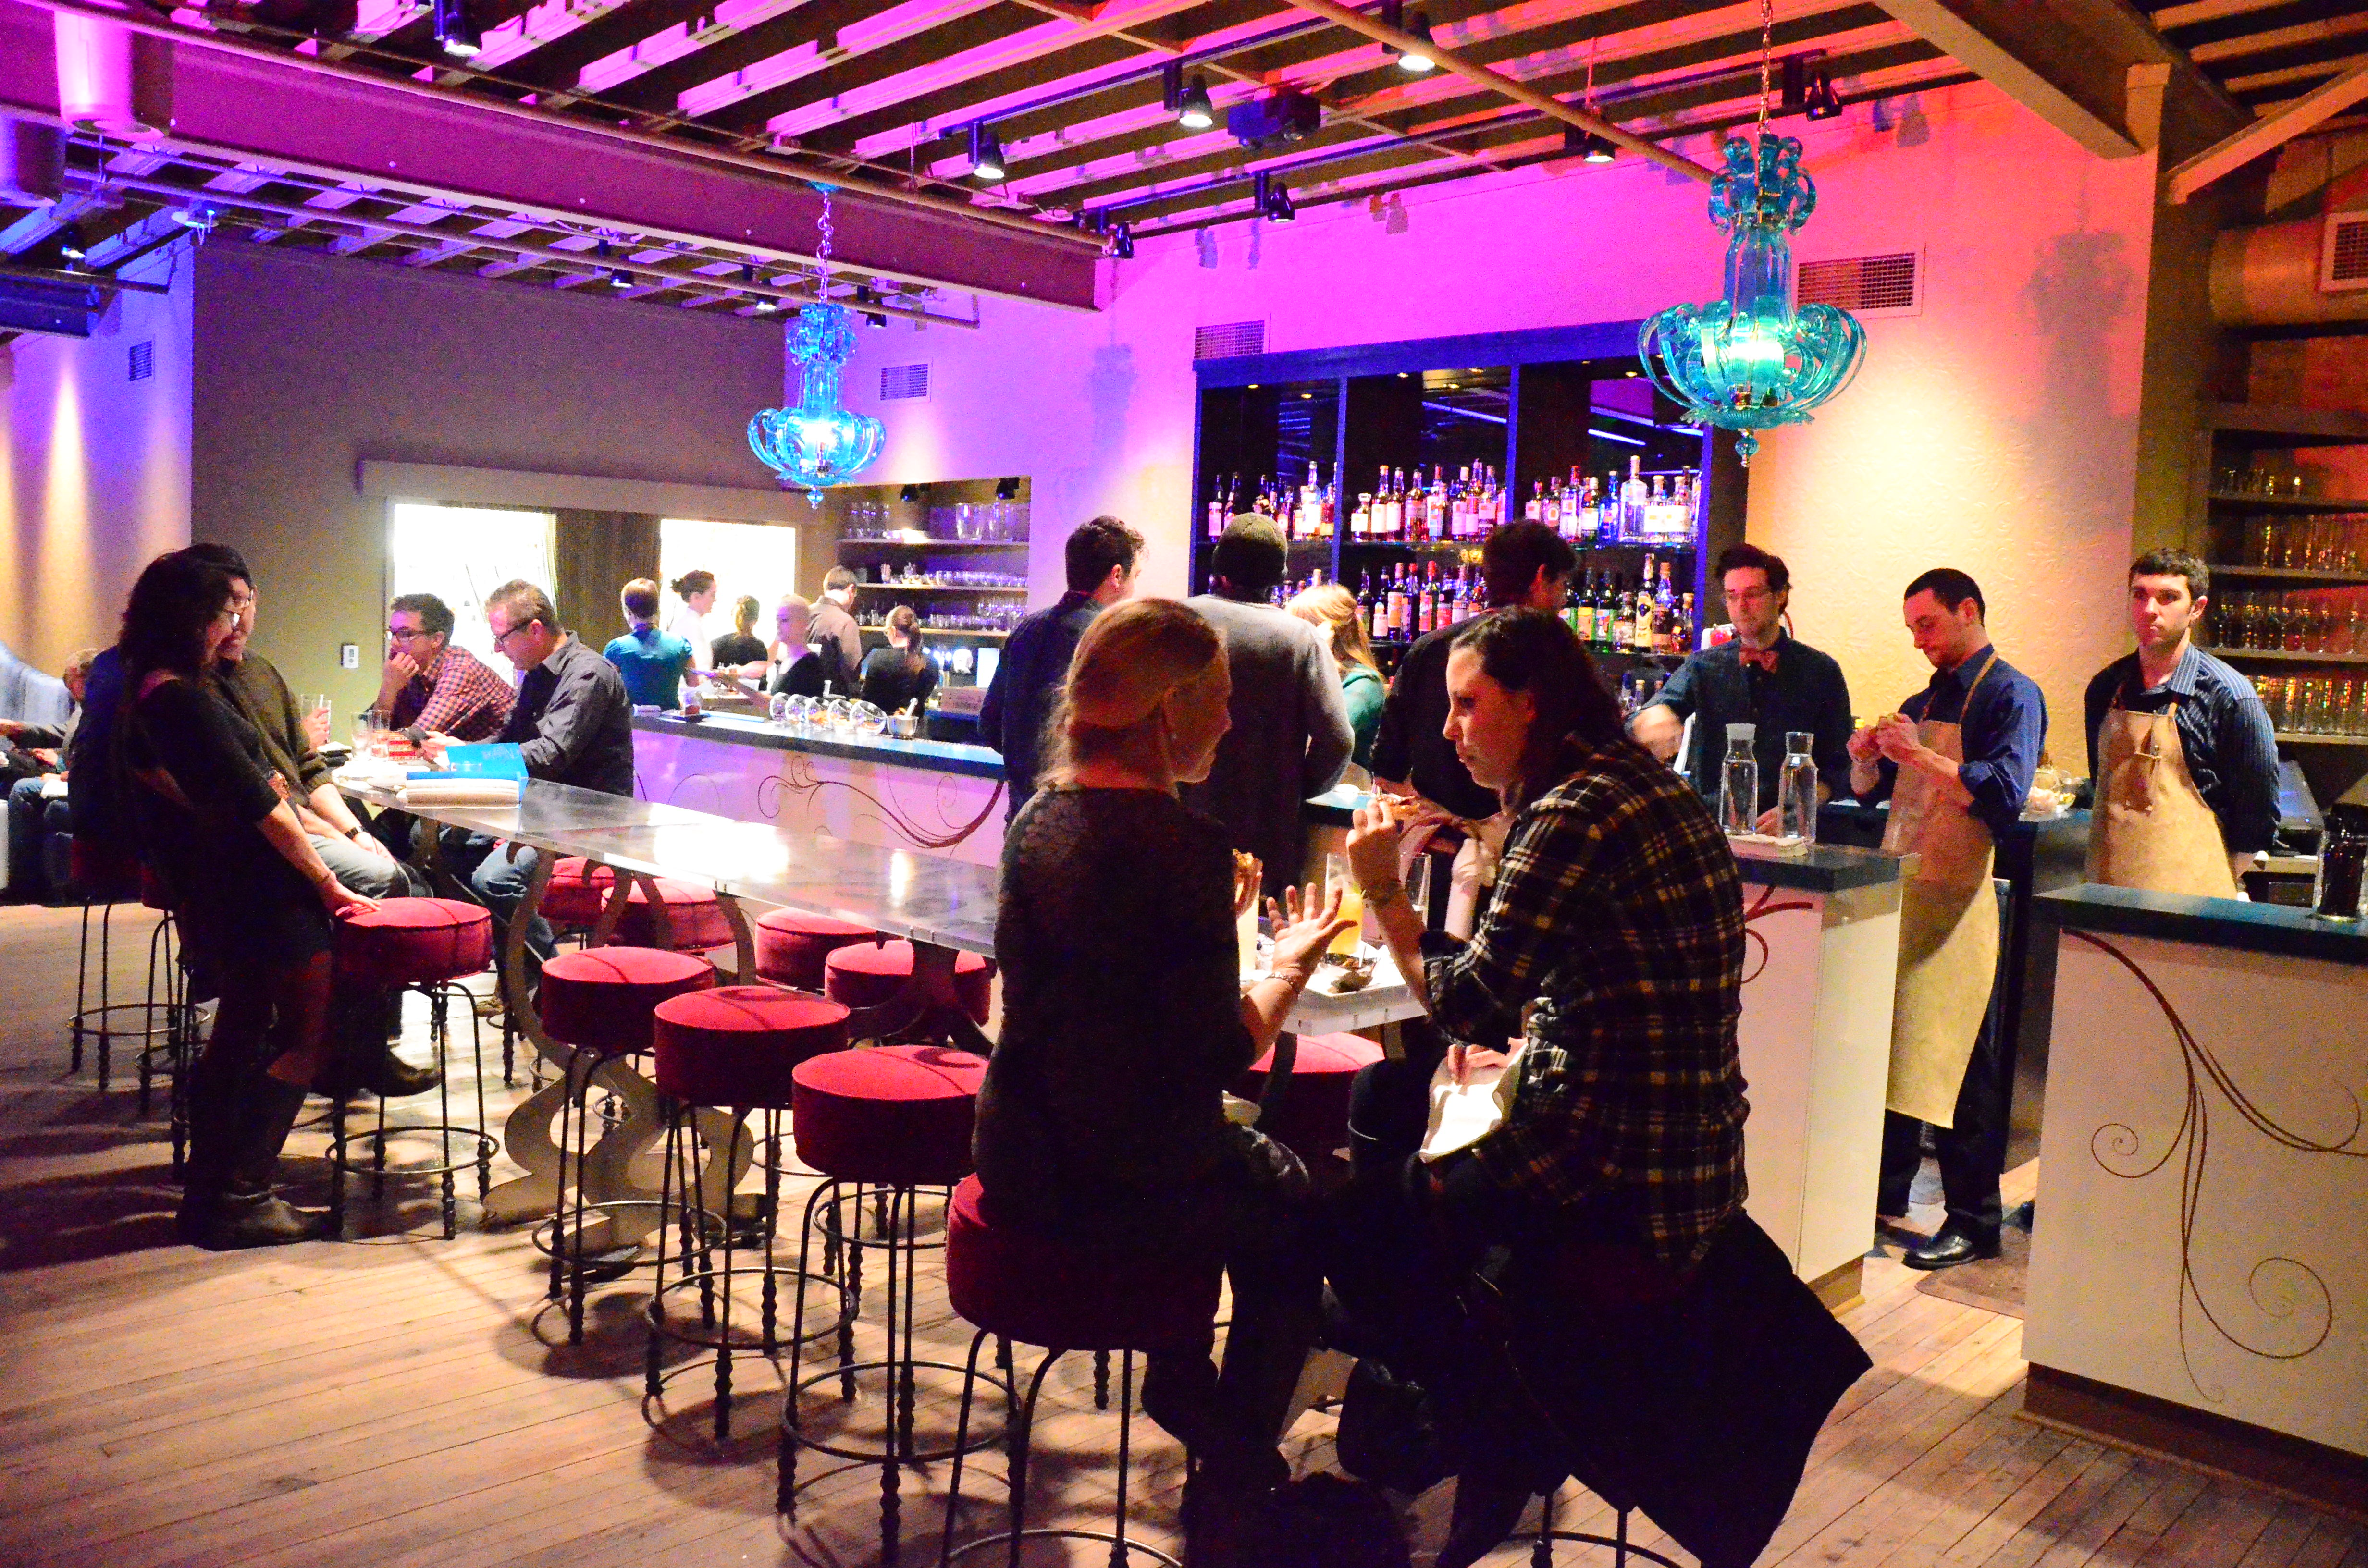 PHOTOS: Ashvegas After Dark at opening of Nightbell